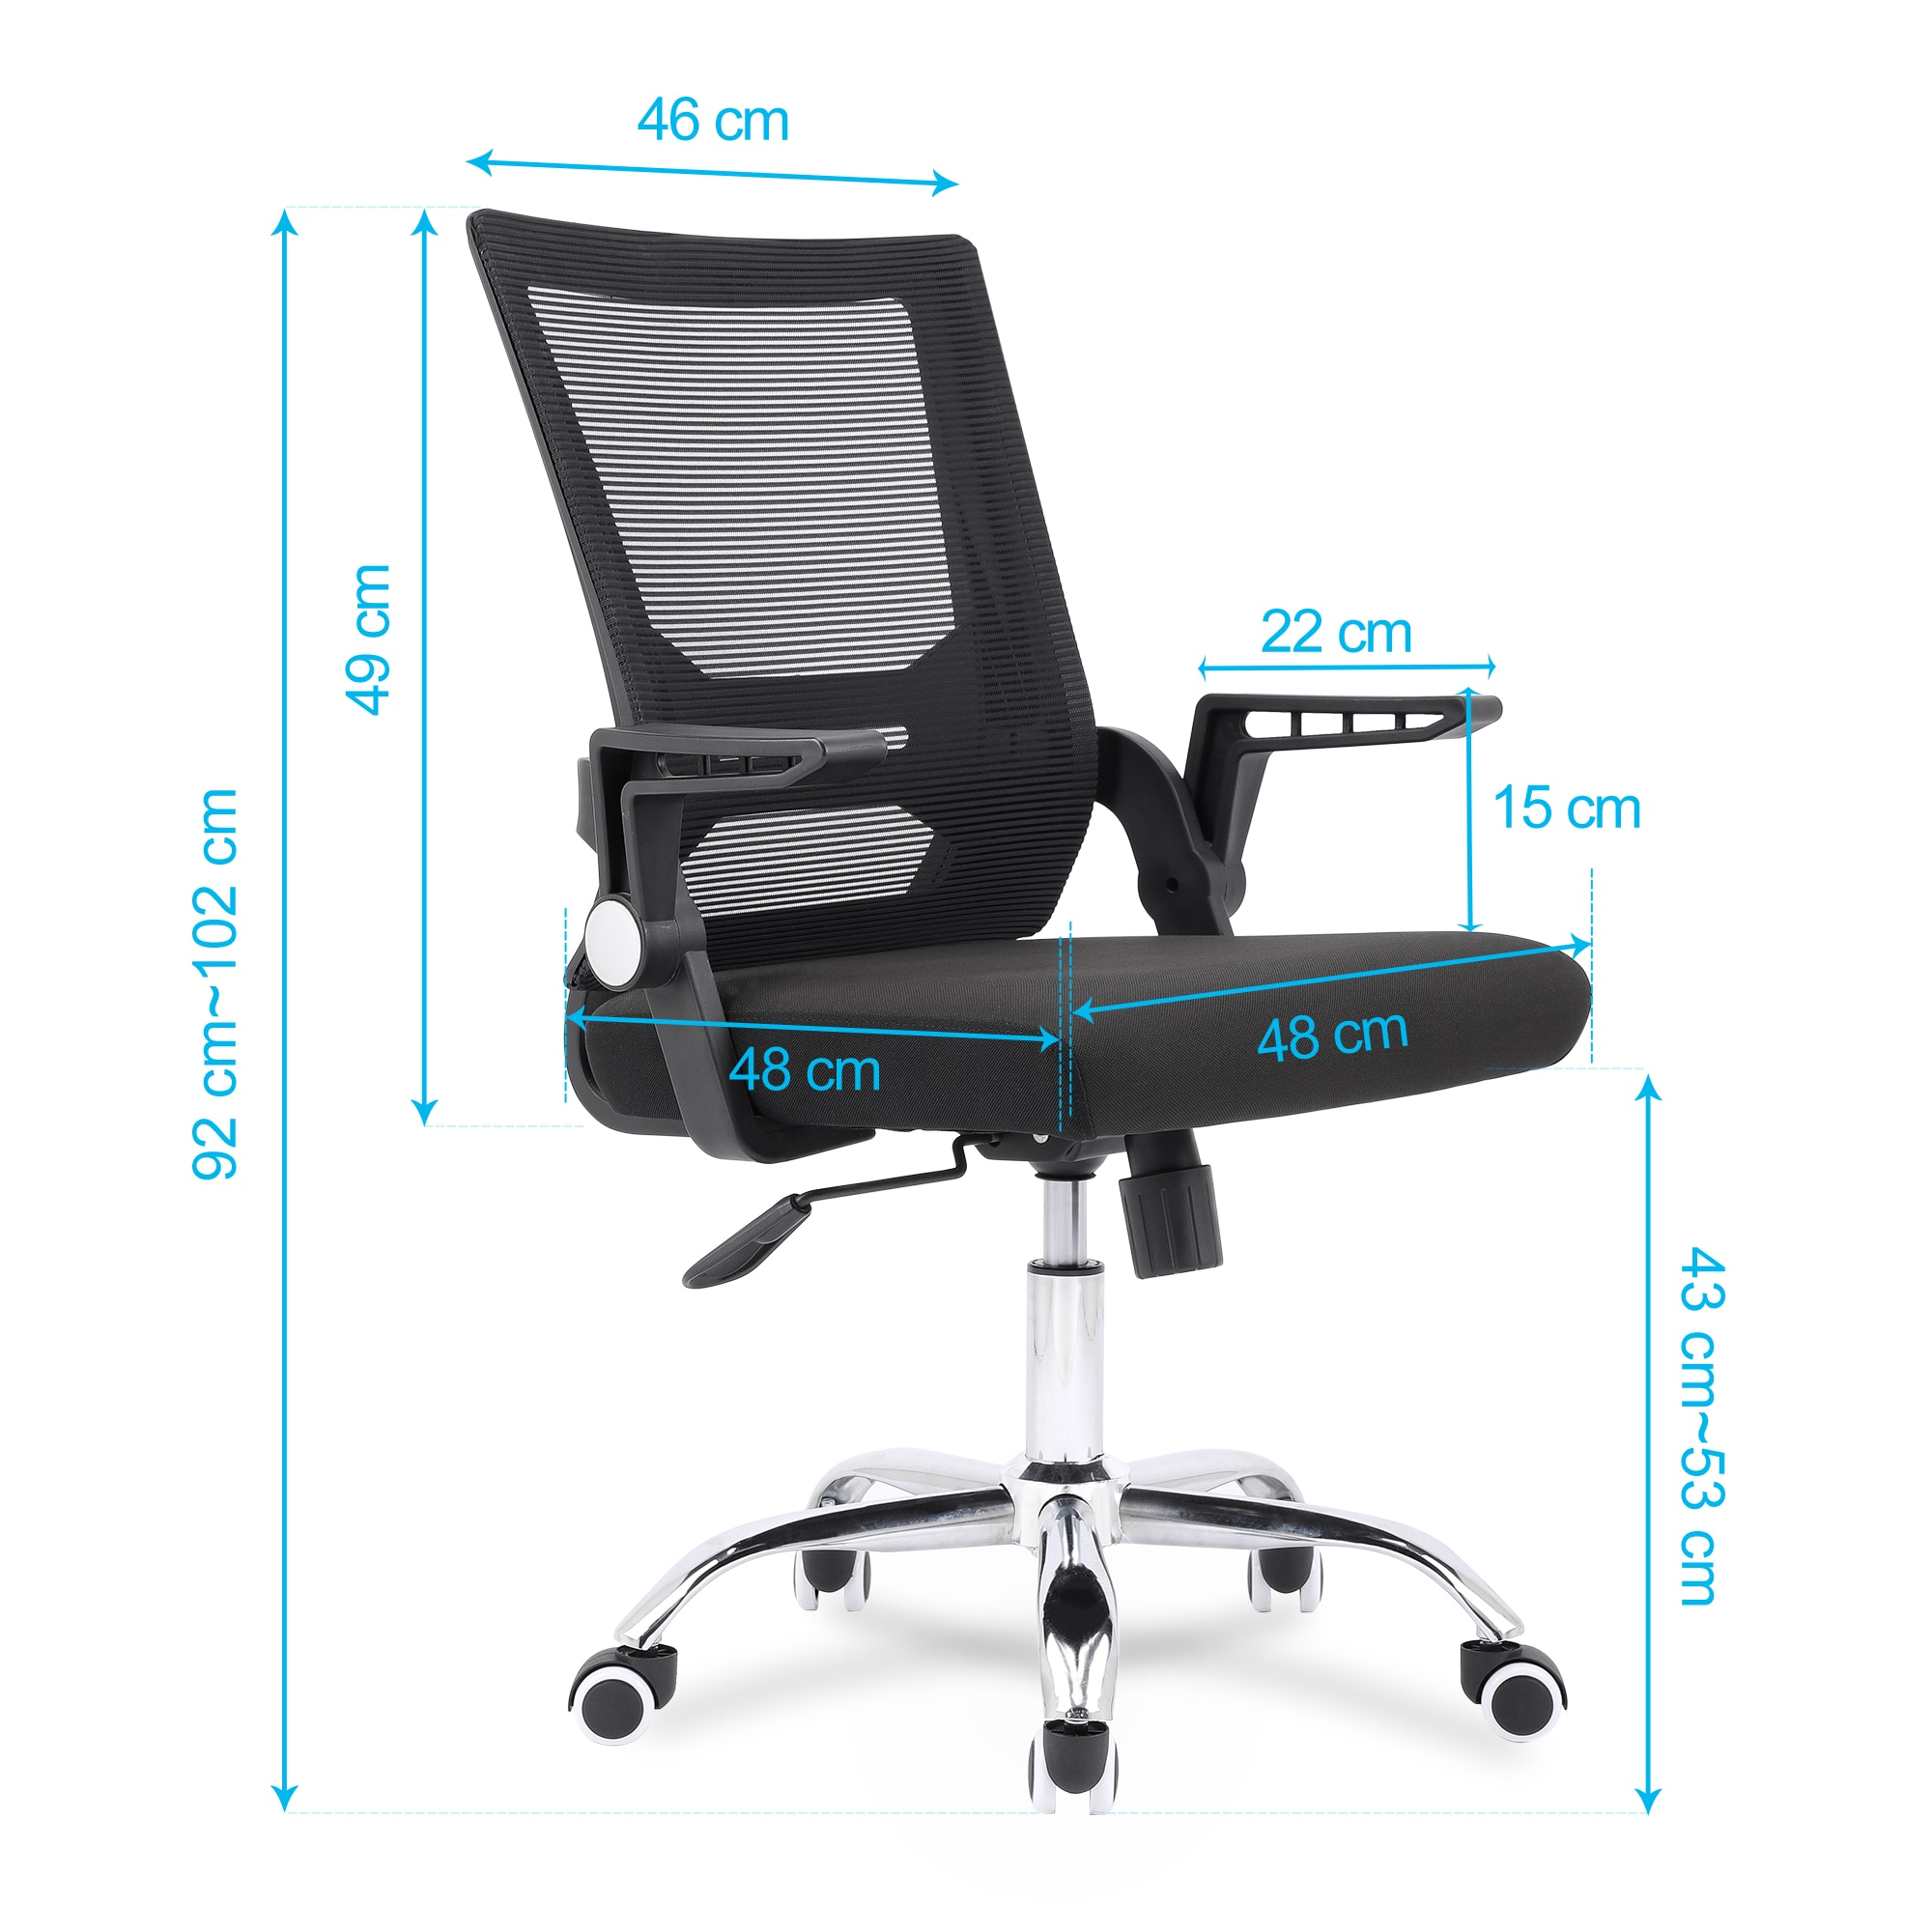 Hda548fde548e4ffba7d7d170f104588fT - Sigtua Swiveling Desk Chair Breathable Height-adjustable PC Chair Ergonomic Executive Black Computer Office Chair